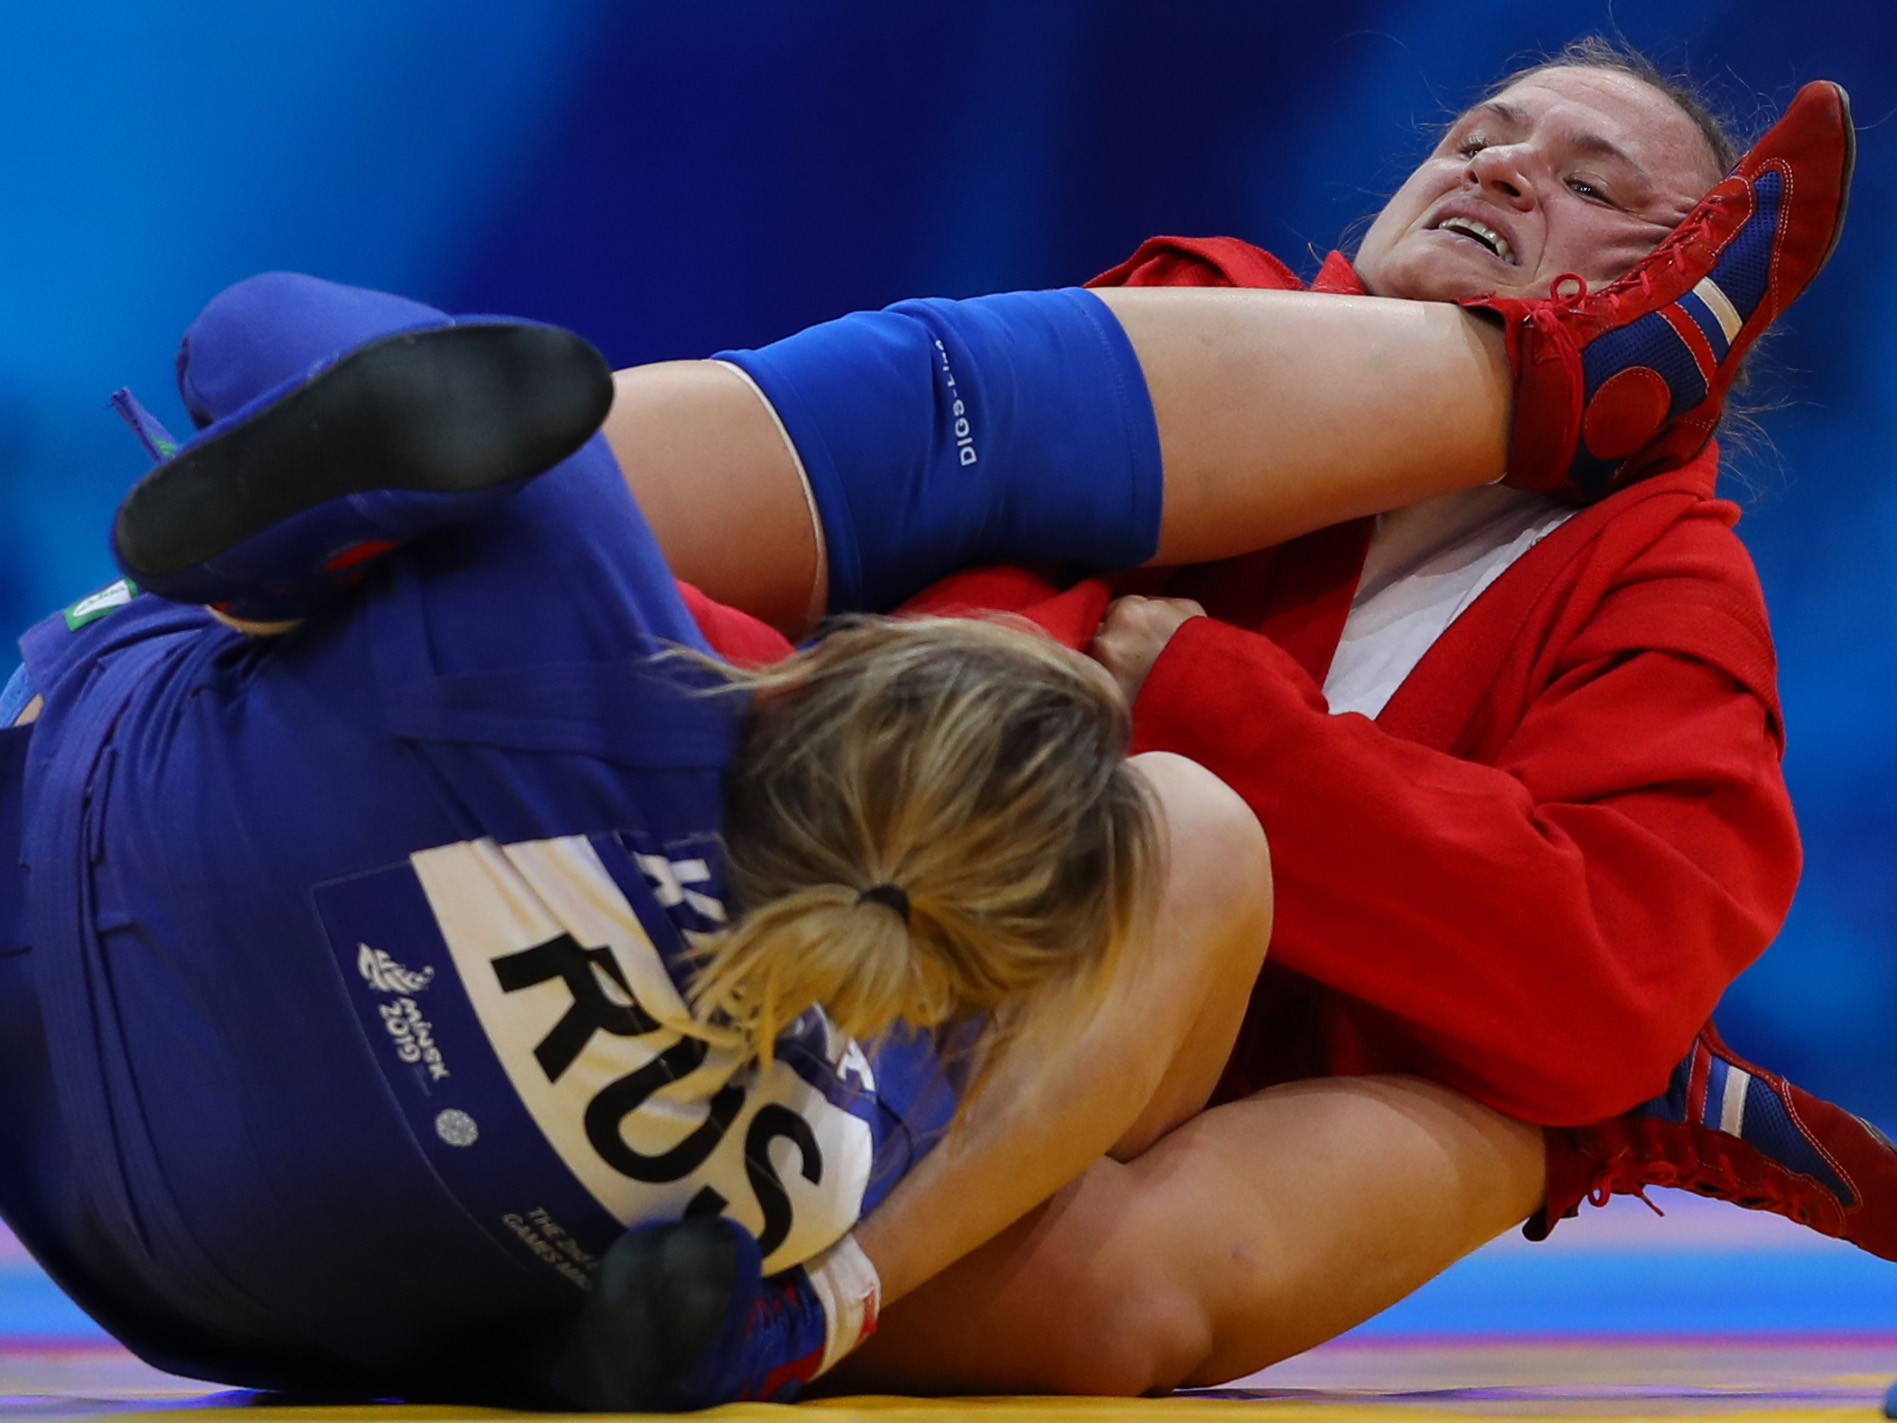 Mariya Oryashkova of Bulgaria (red) competes against Zhanara Kusanova of Russia (blue) in the Women's 80kg Sambo Gold Medal match Final during day two of the 2nd European Games at Sports Palace on June 23, 2019 in Minsk, Belarus.  © Francois Nel/Getty Images.